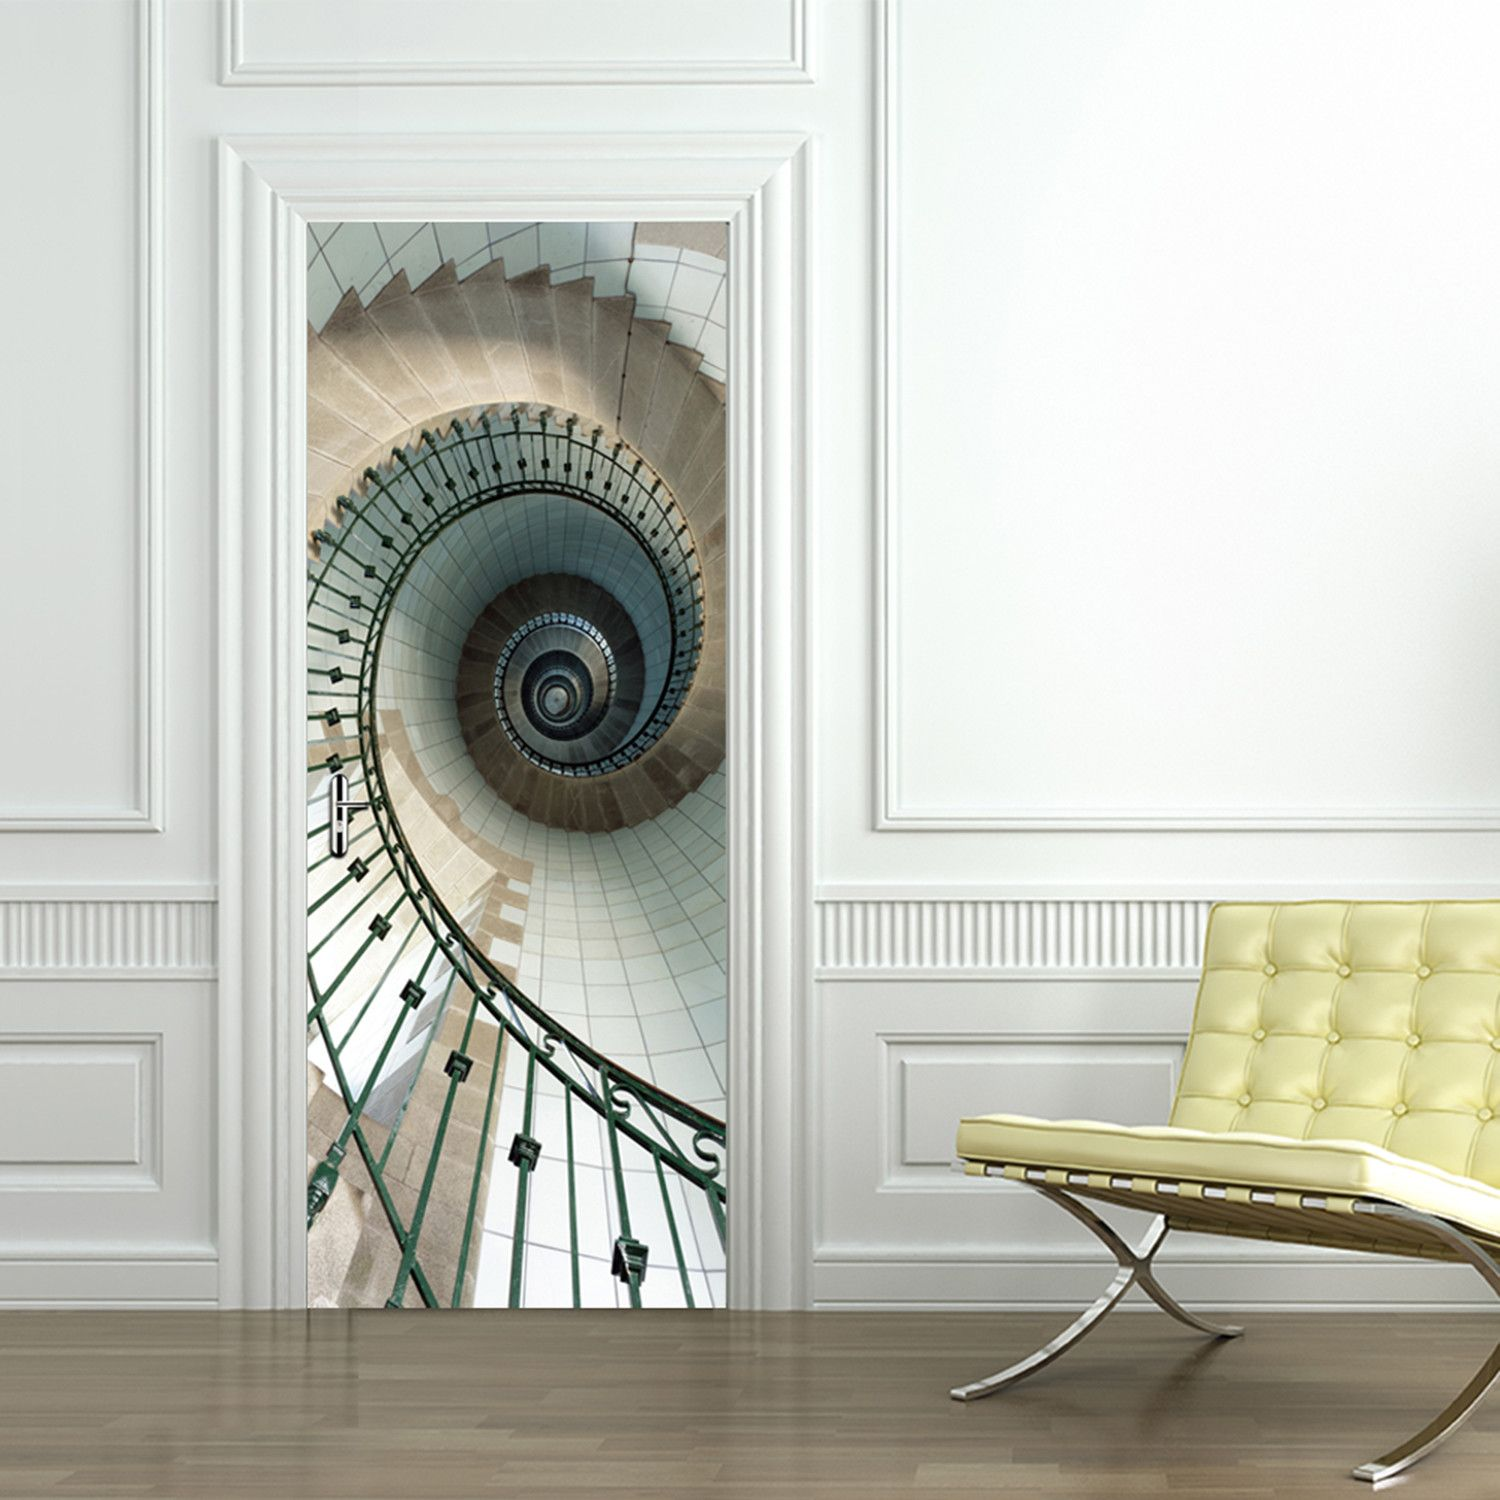 Accent Wall For Circular Staircase: Wall Treatments, Door Stickers, Home Decor